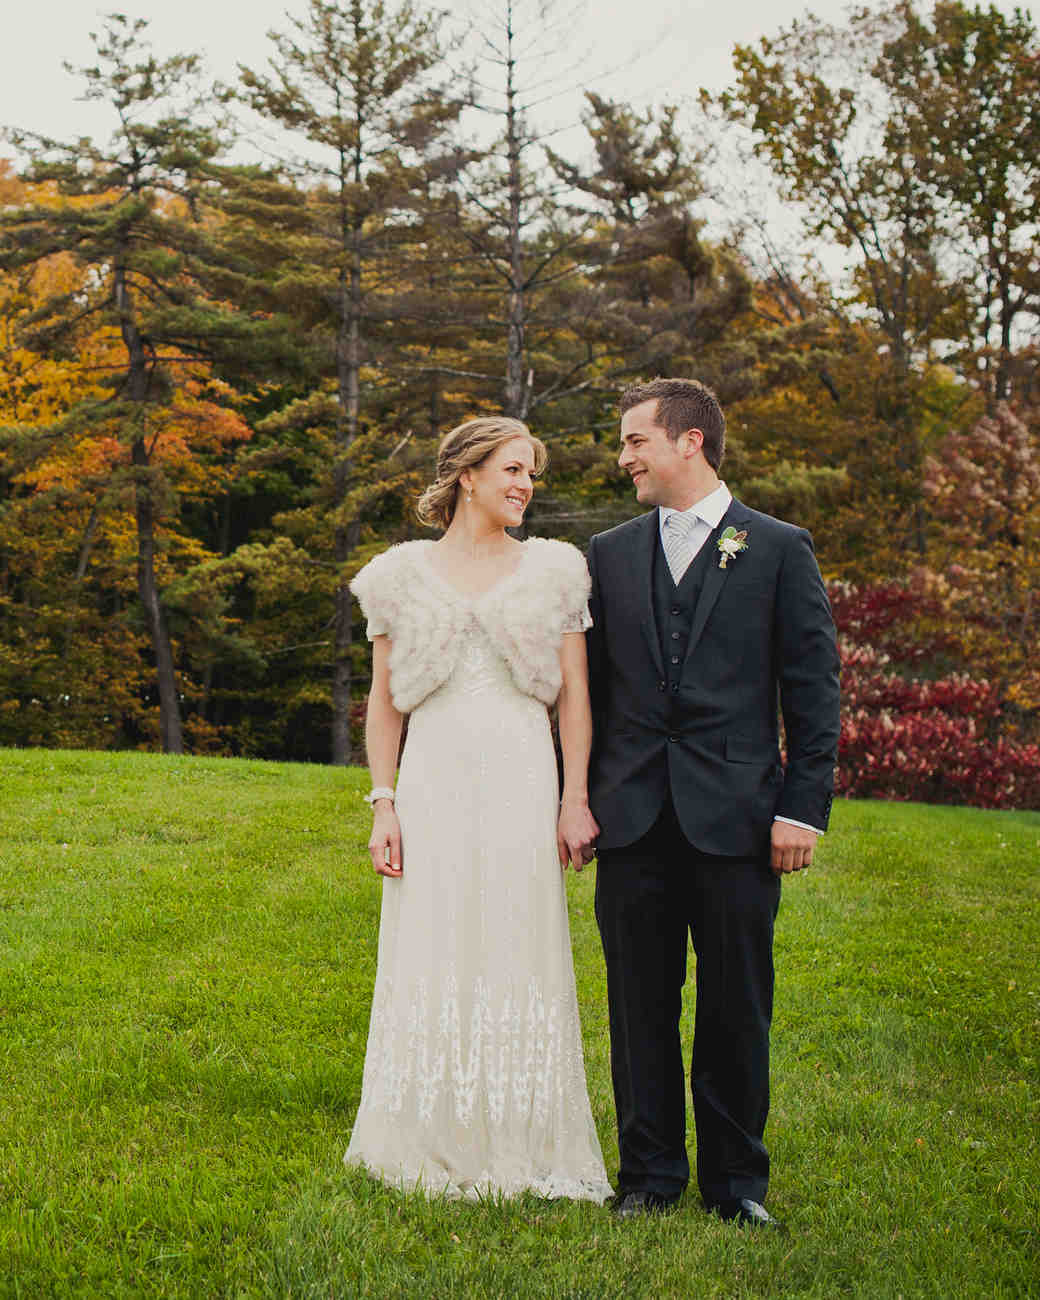 Real Wedding: Natalie And Jeff, Ontario, Canada